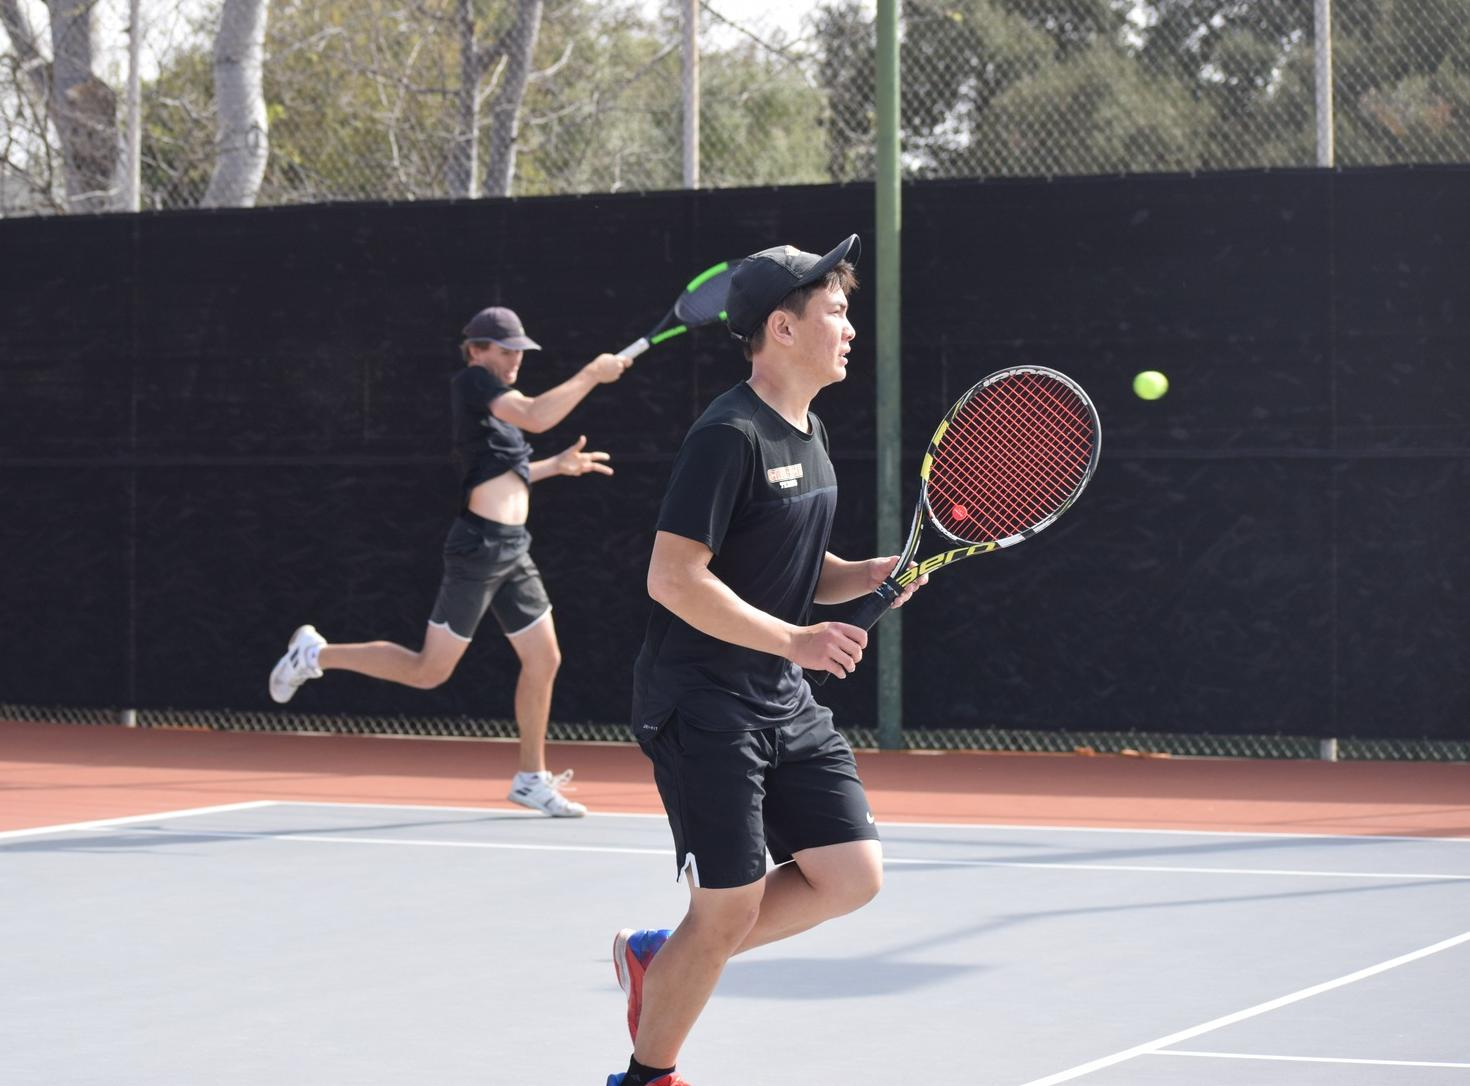 PREVIEW: No. 22 Men's Tennis Readies for No. 1 CMS